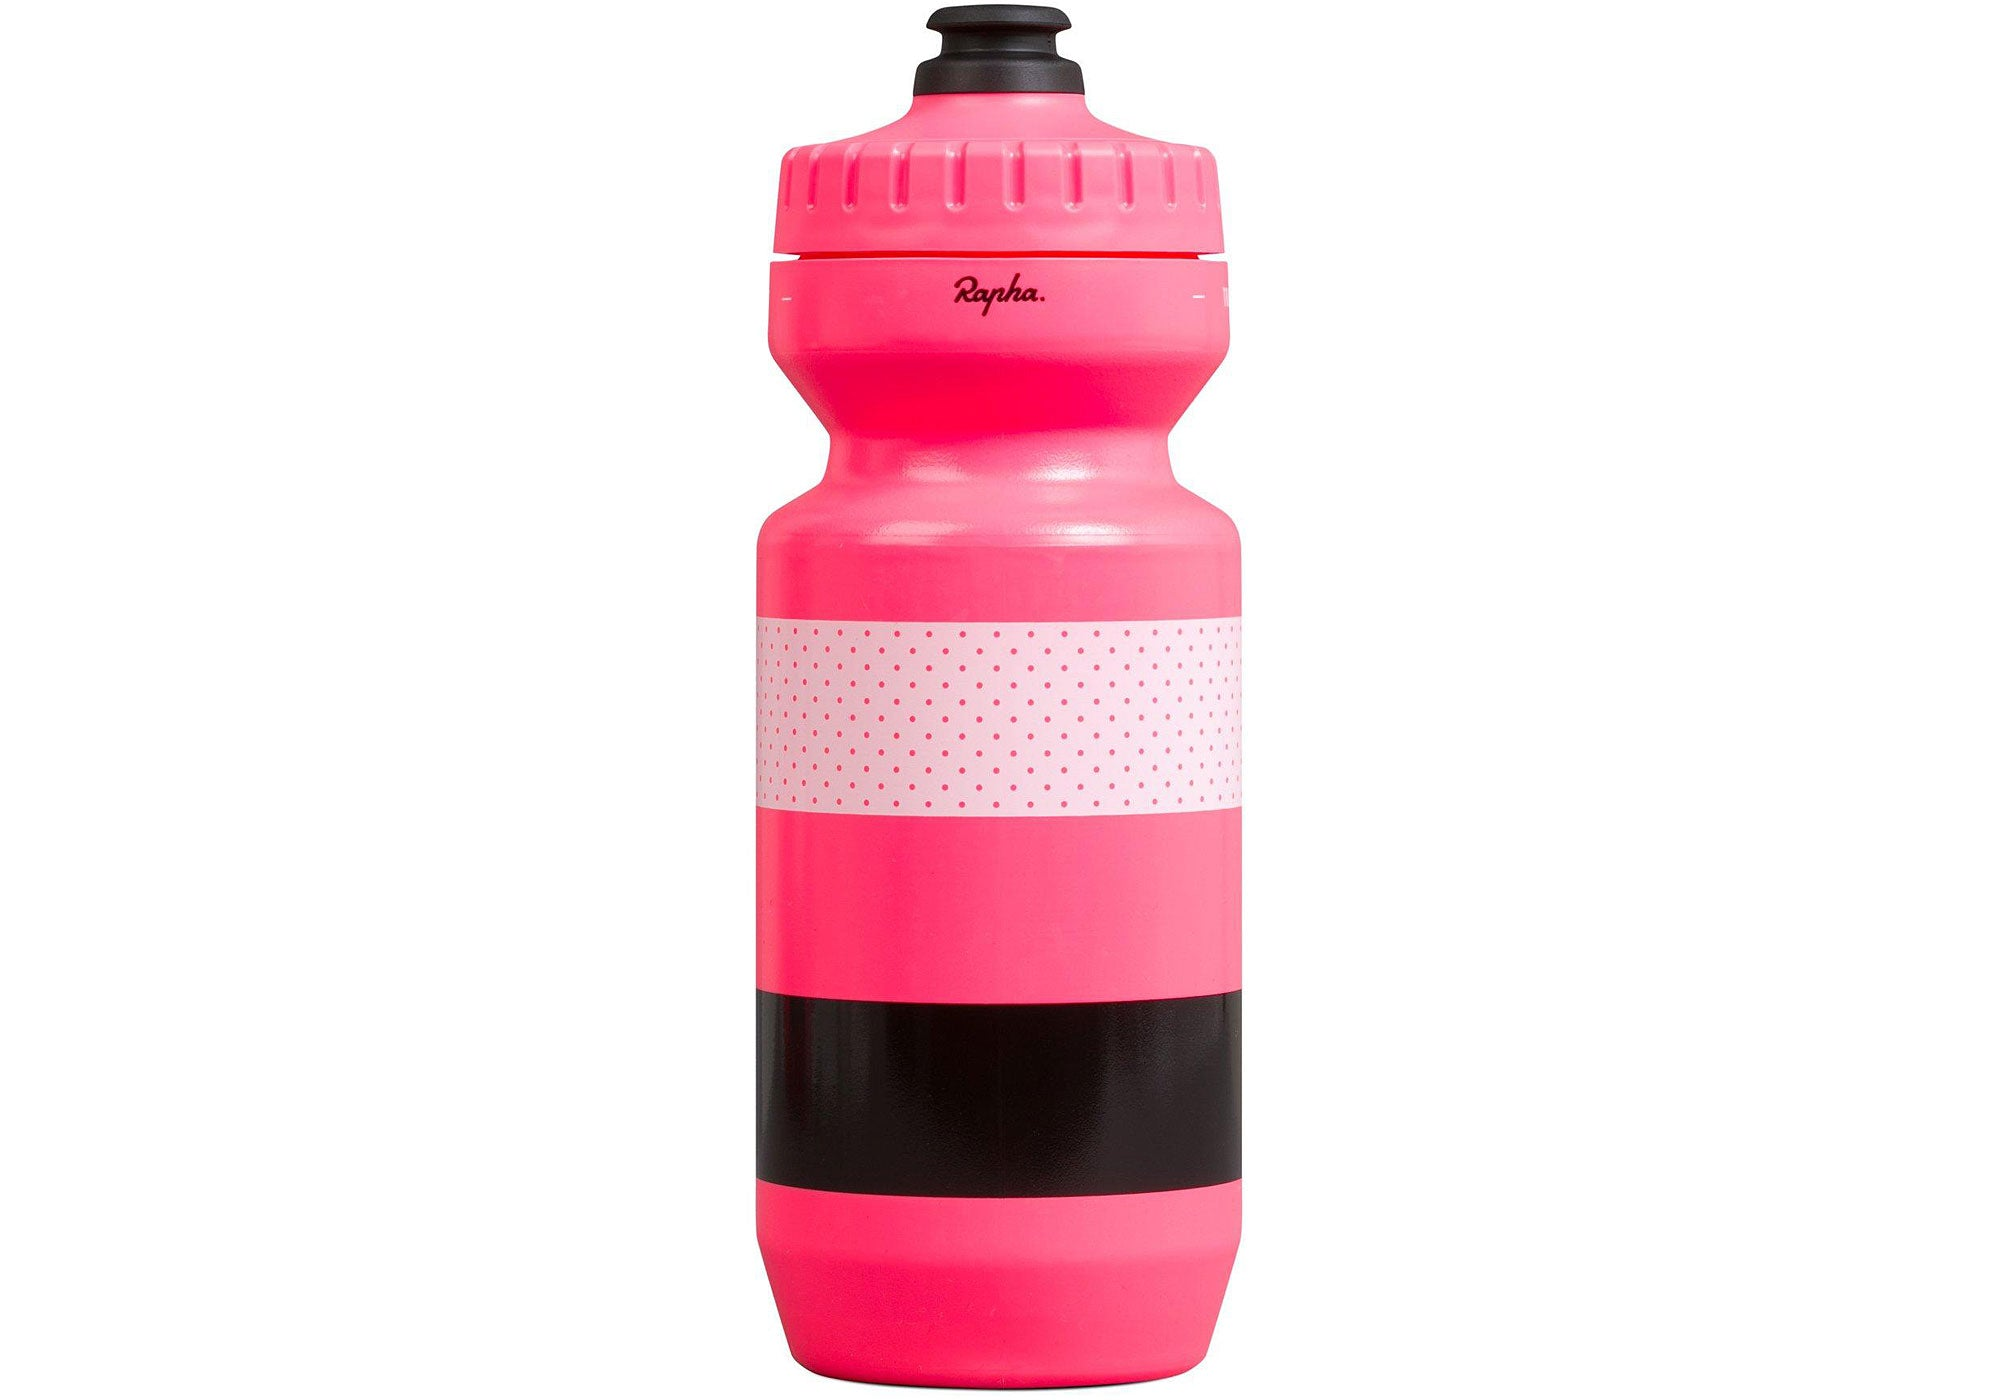 Rapha Explore Bidon Small 625ml, Hi-Viz Pink Woolys Wheels Paddington Eastern Suburbs Sydney